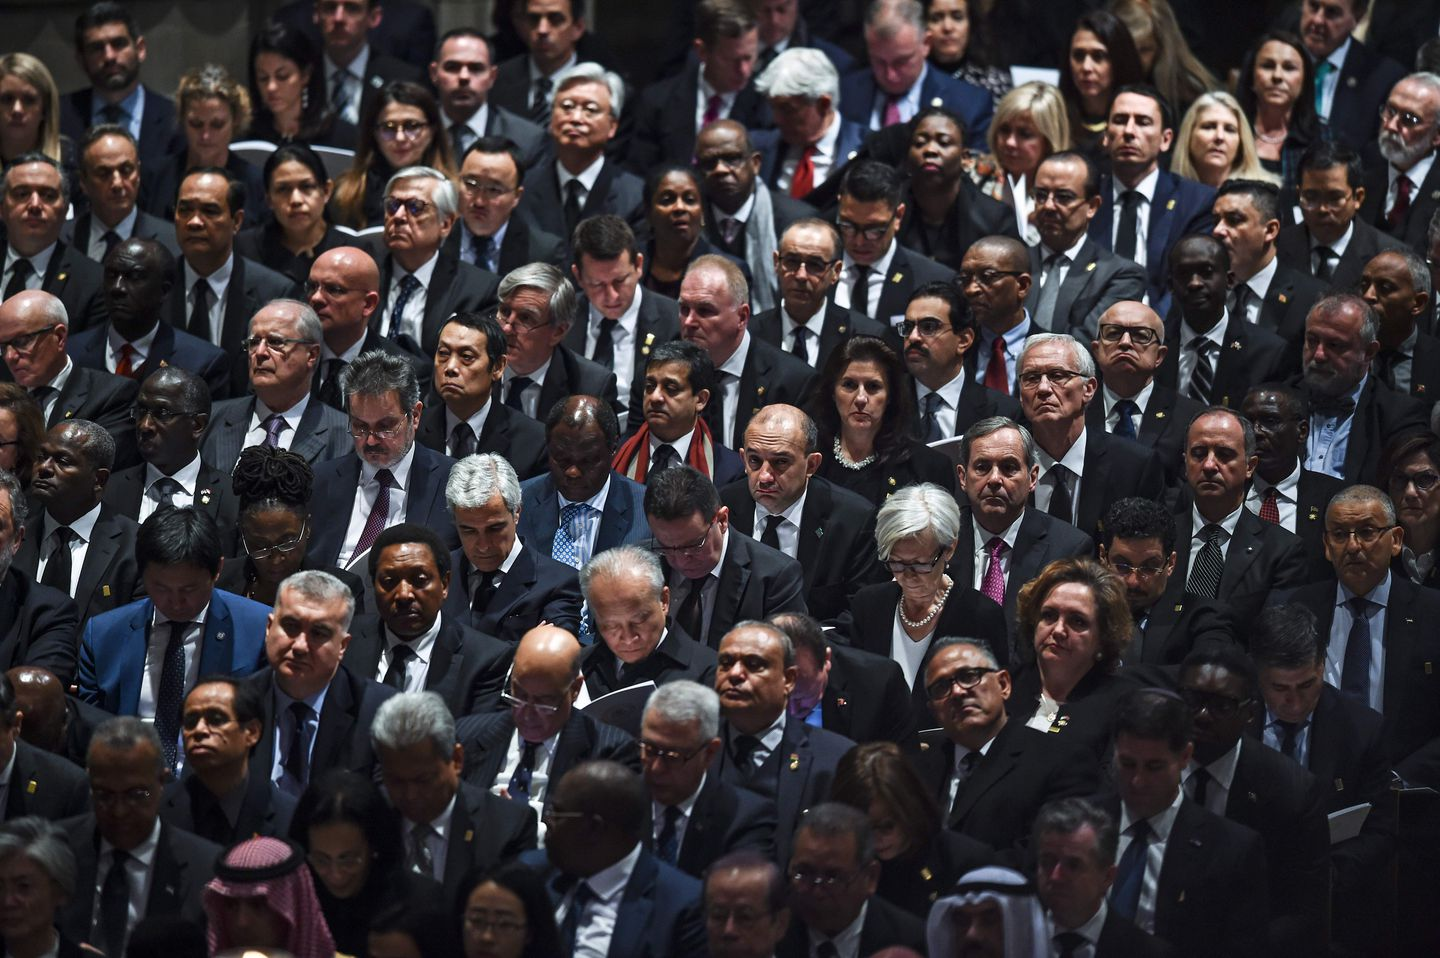 Guests listen to the eulogy of former president George H.W. Bush at his state funeral.